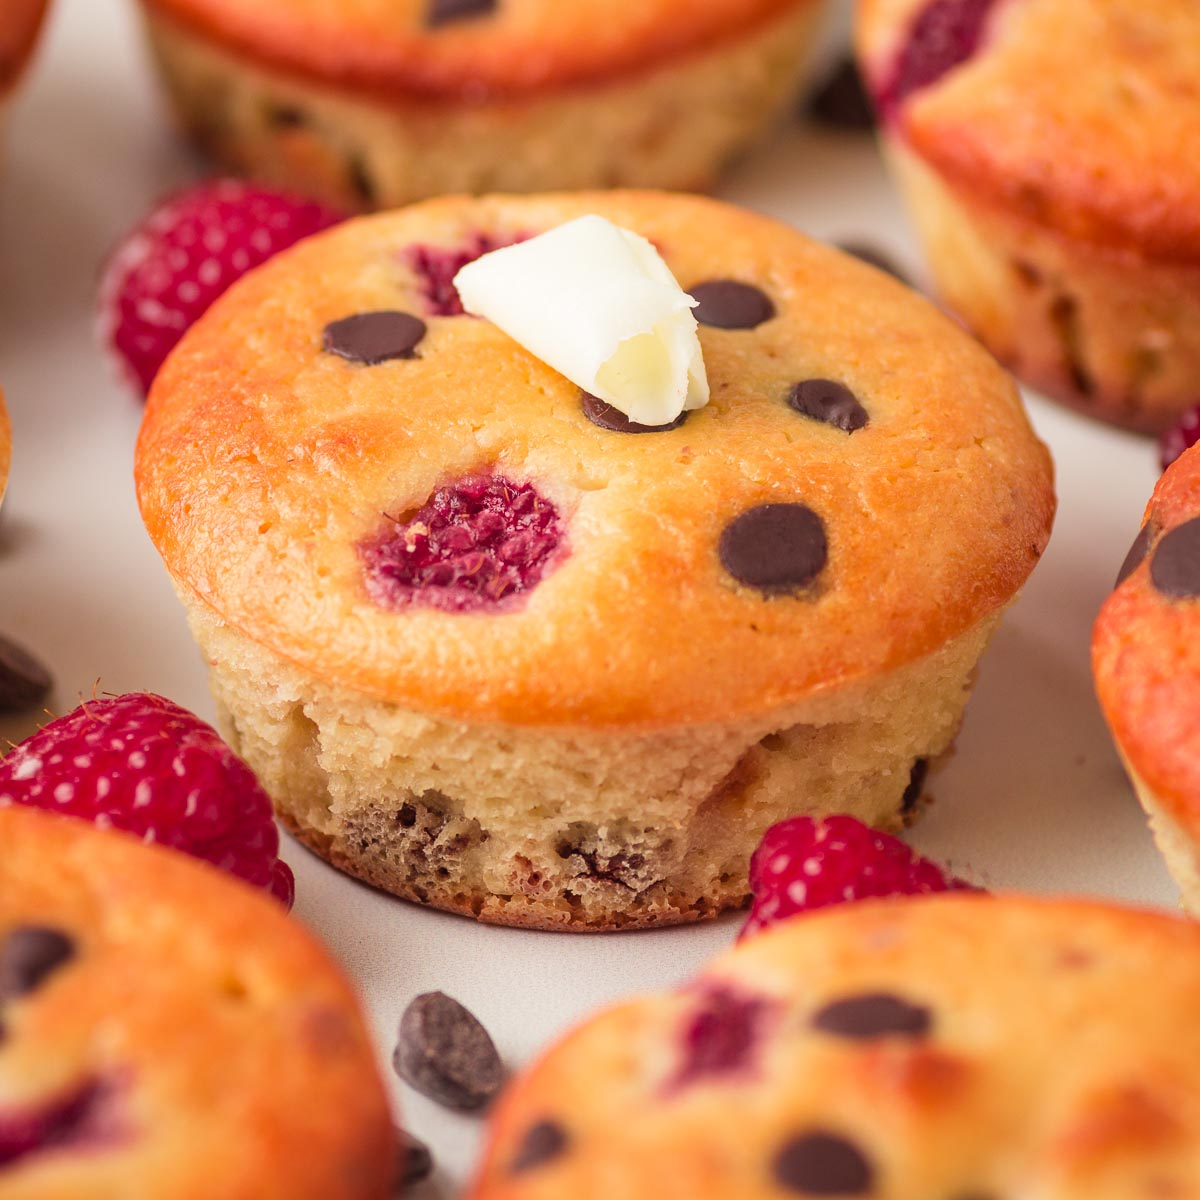 low carb muffins with raspberries and chocolate chips